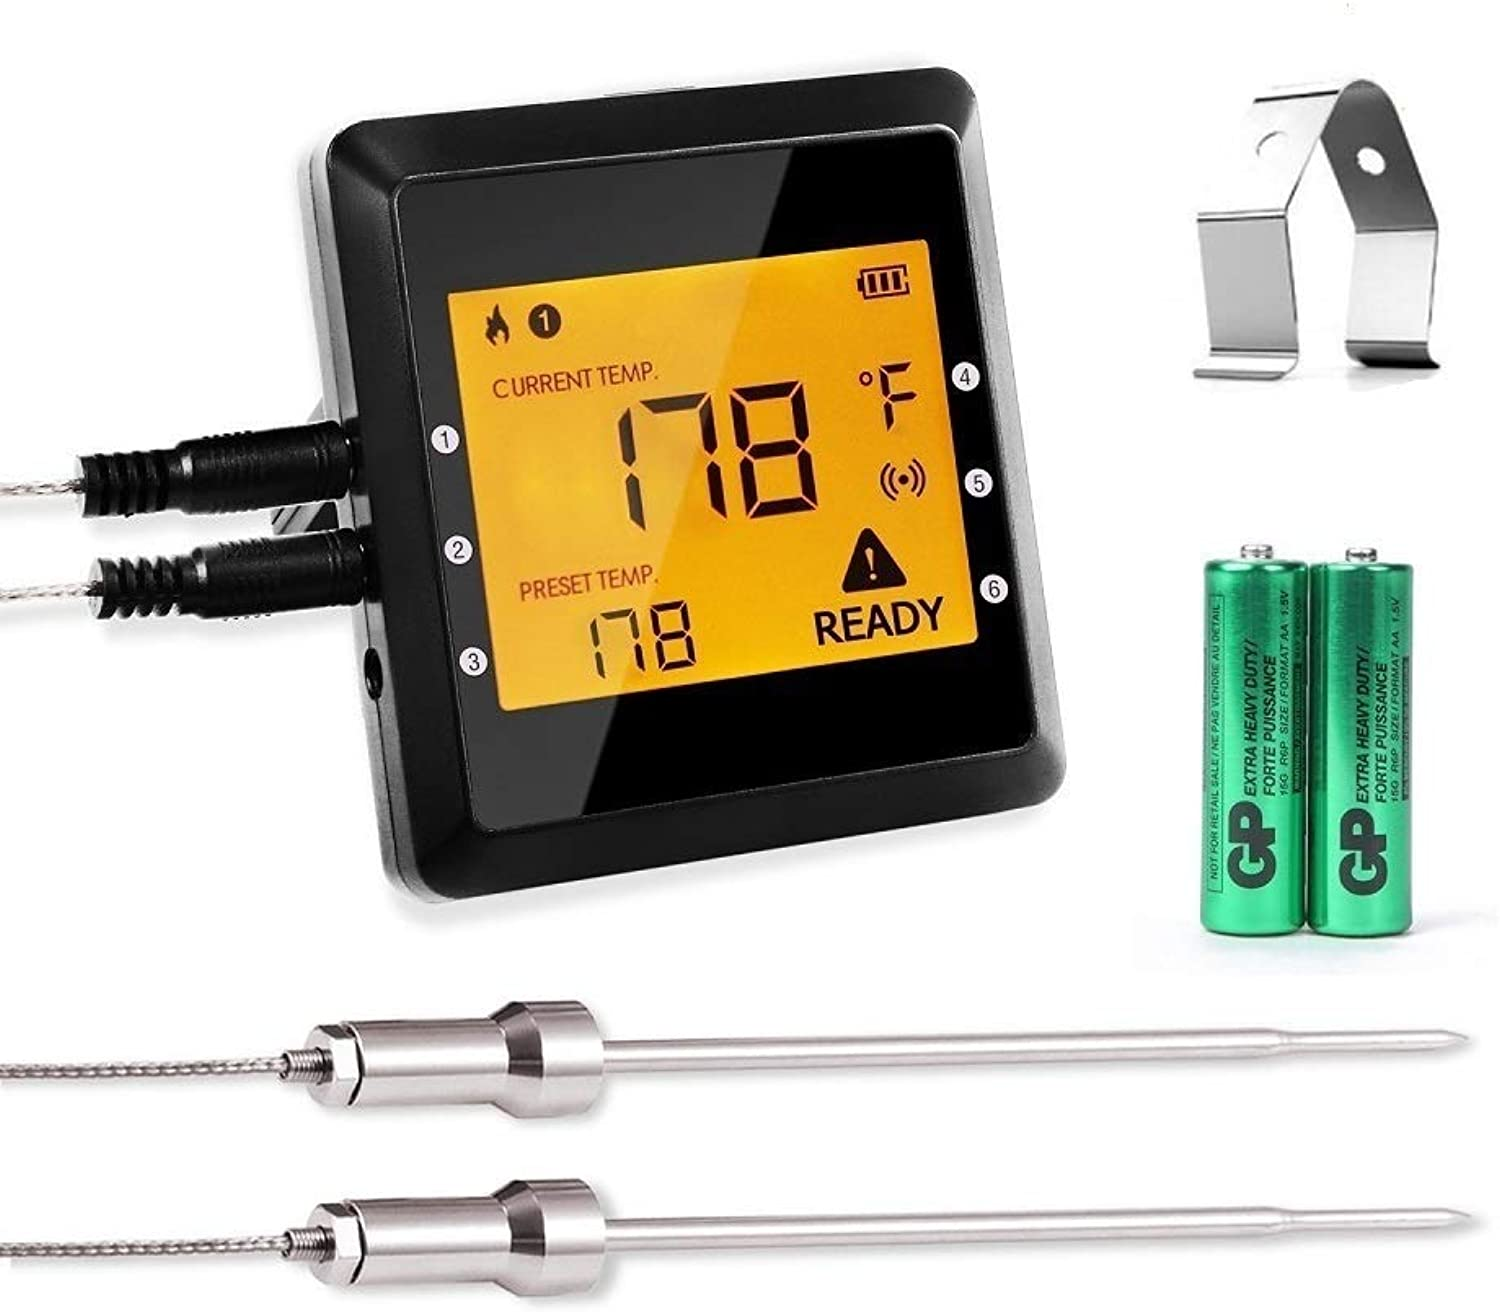 Digital Meat Thermometer,ICOCO Best Smart Wireless blueetooth Meat Thermometer with 6 Probe Ports Upgraded Backlight Kitchen Food Thermometer and Easy BBQ Meat Thermometer for Grill,Cooking,Oven,Smoke